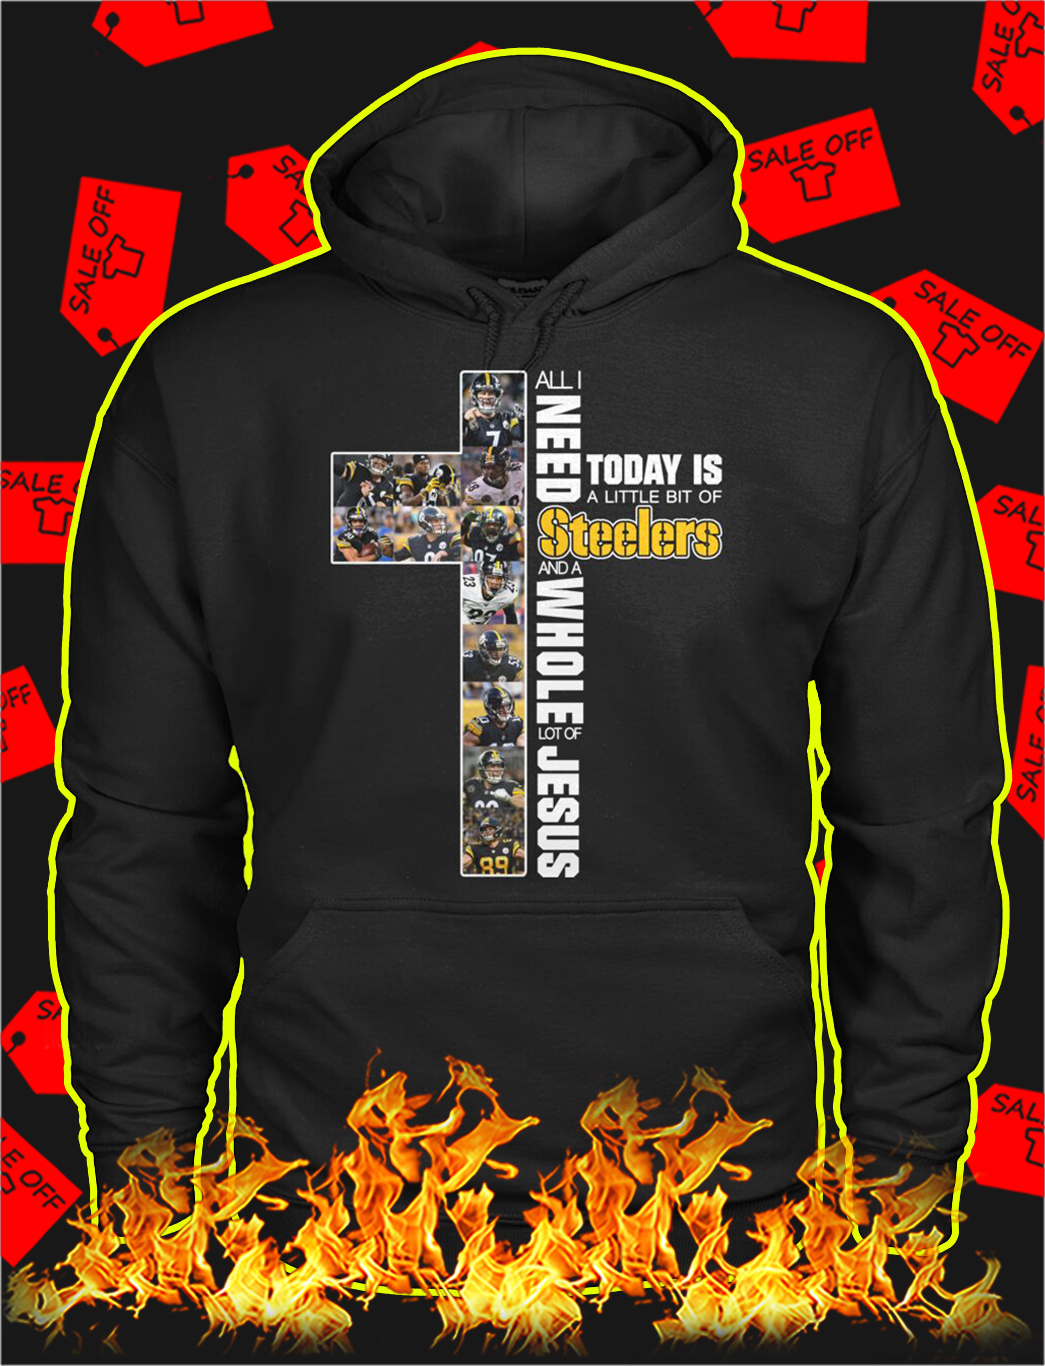 All i need today is a little bit of steelers jesus hoodie